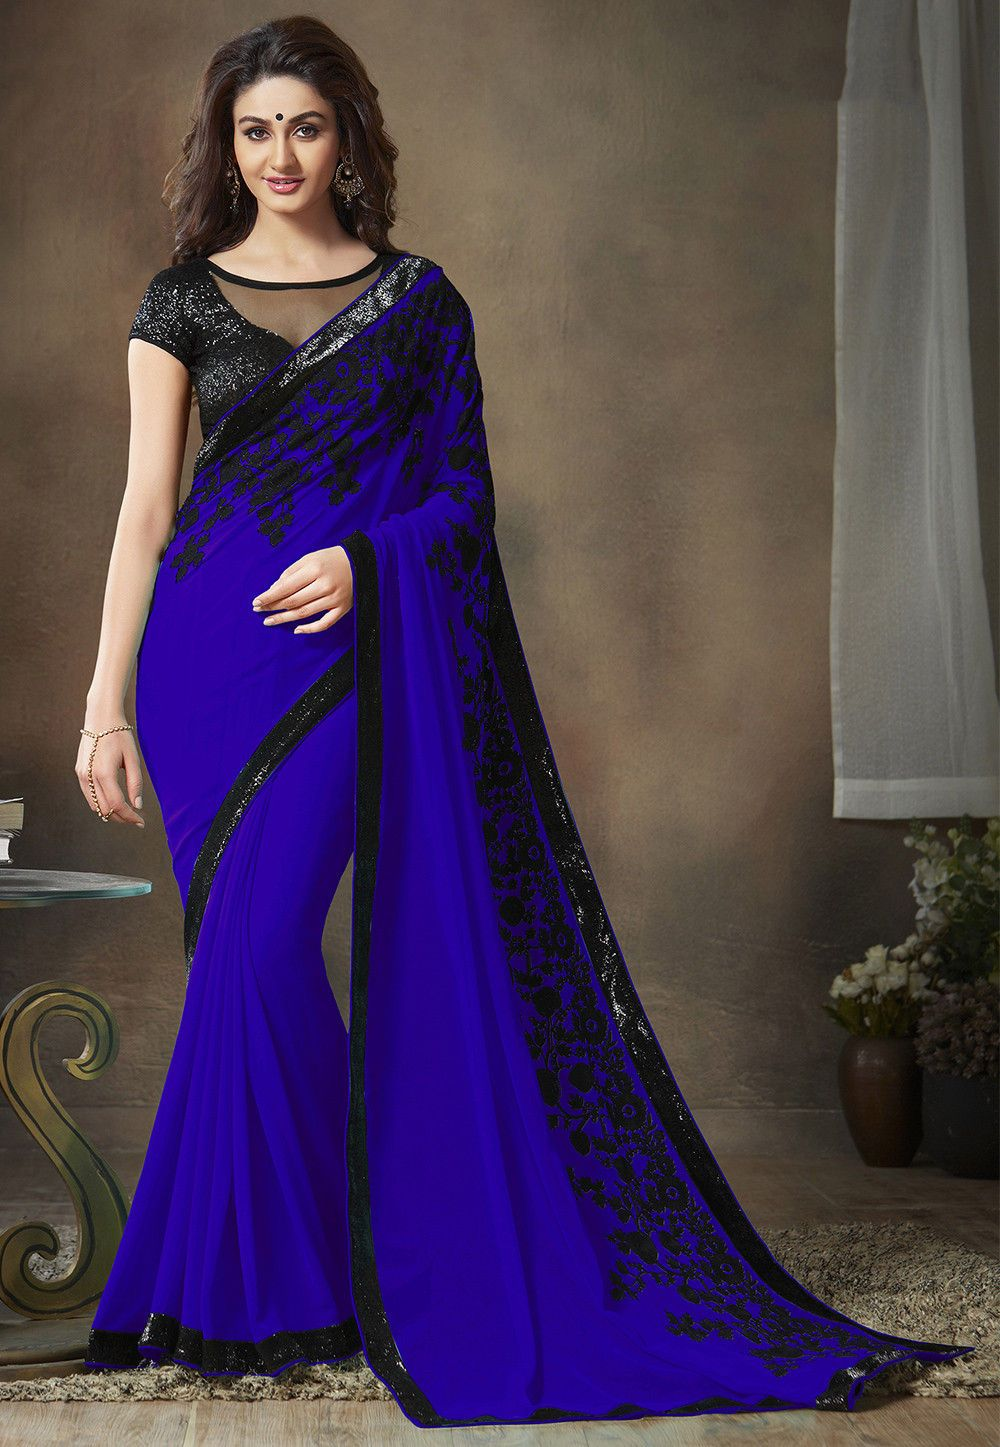 38601347aa6 Faux Georgette Saree in Royal Blue Enhanced with Woolen Thread ...